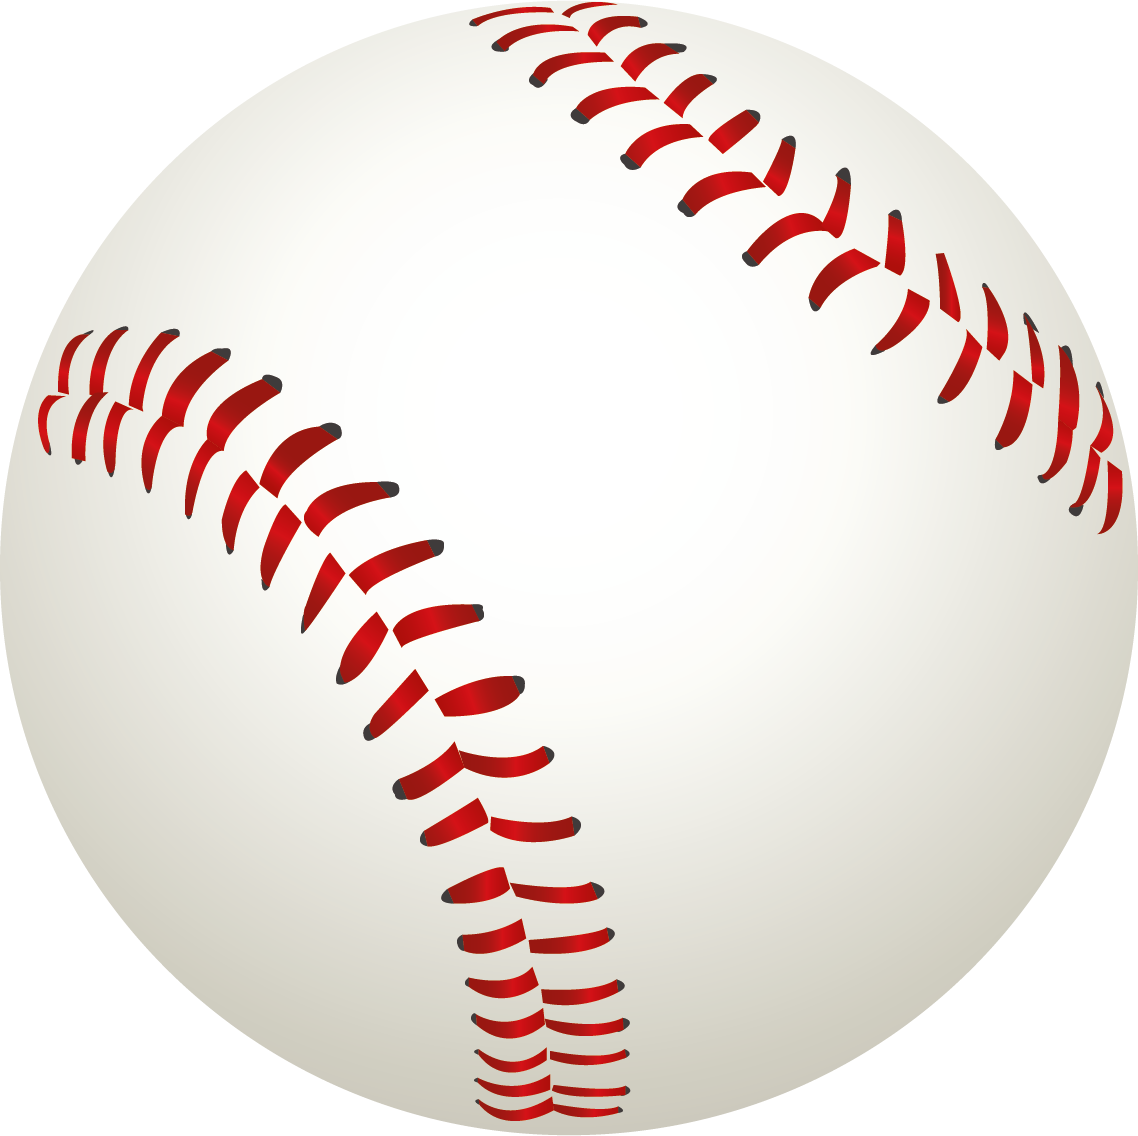 Baseball clipart high resolution #1